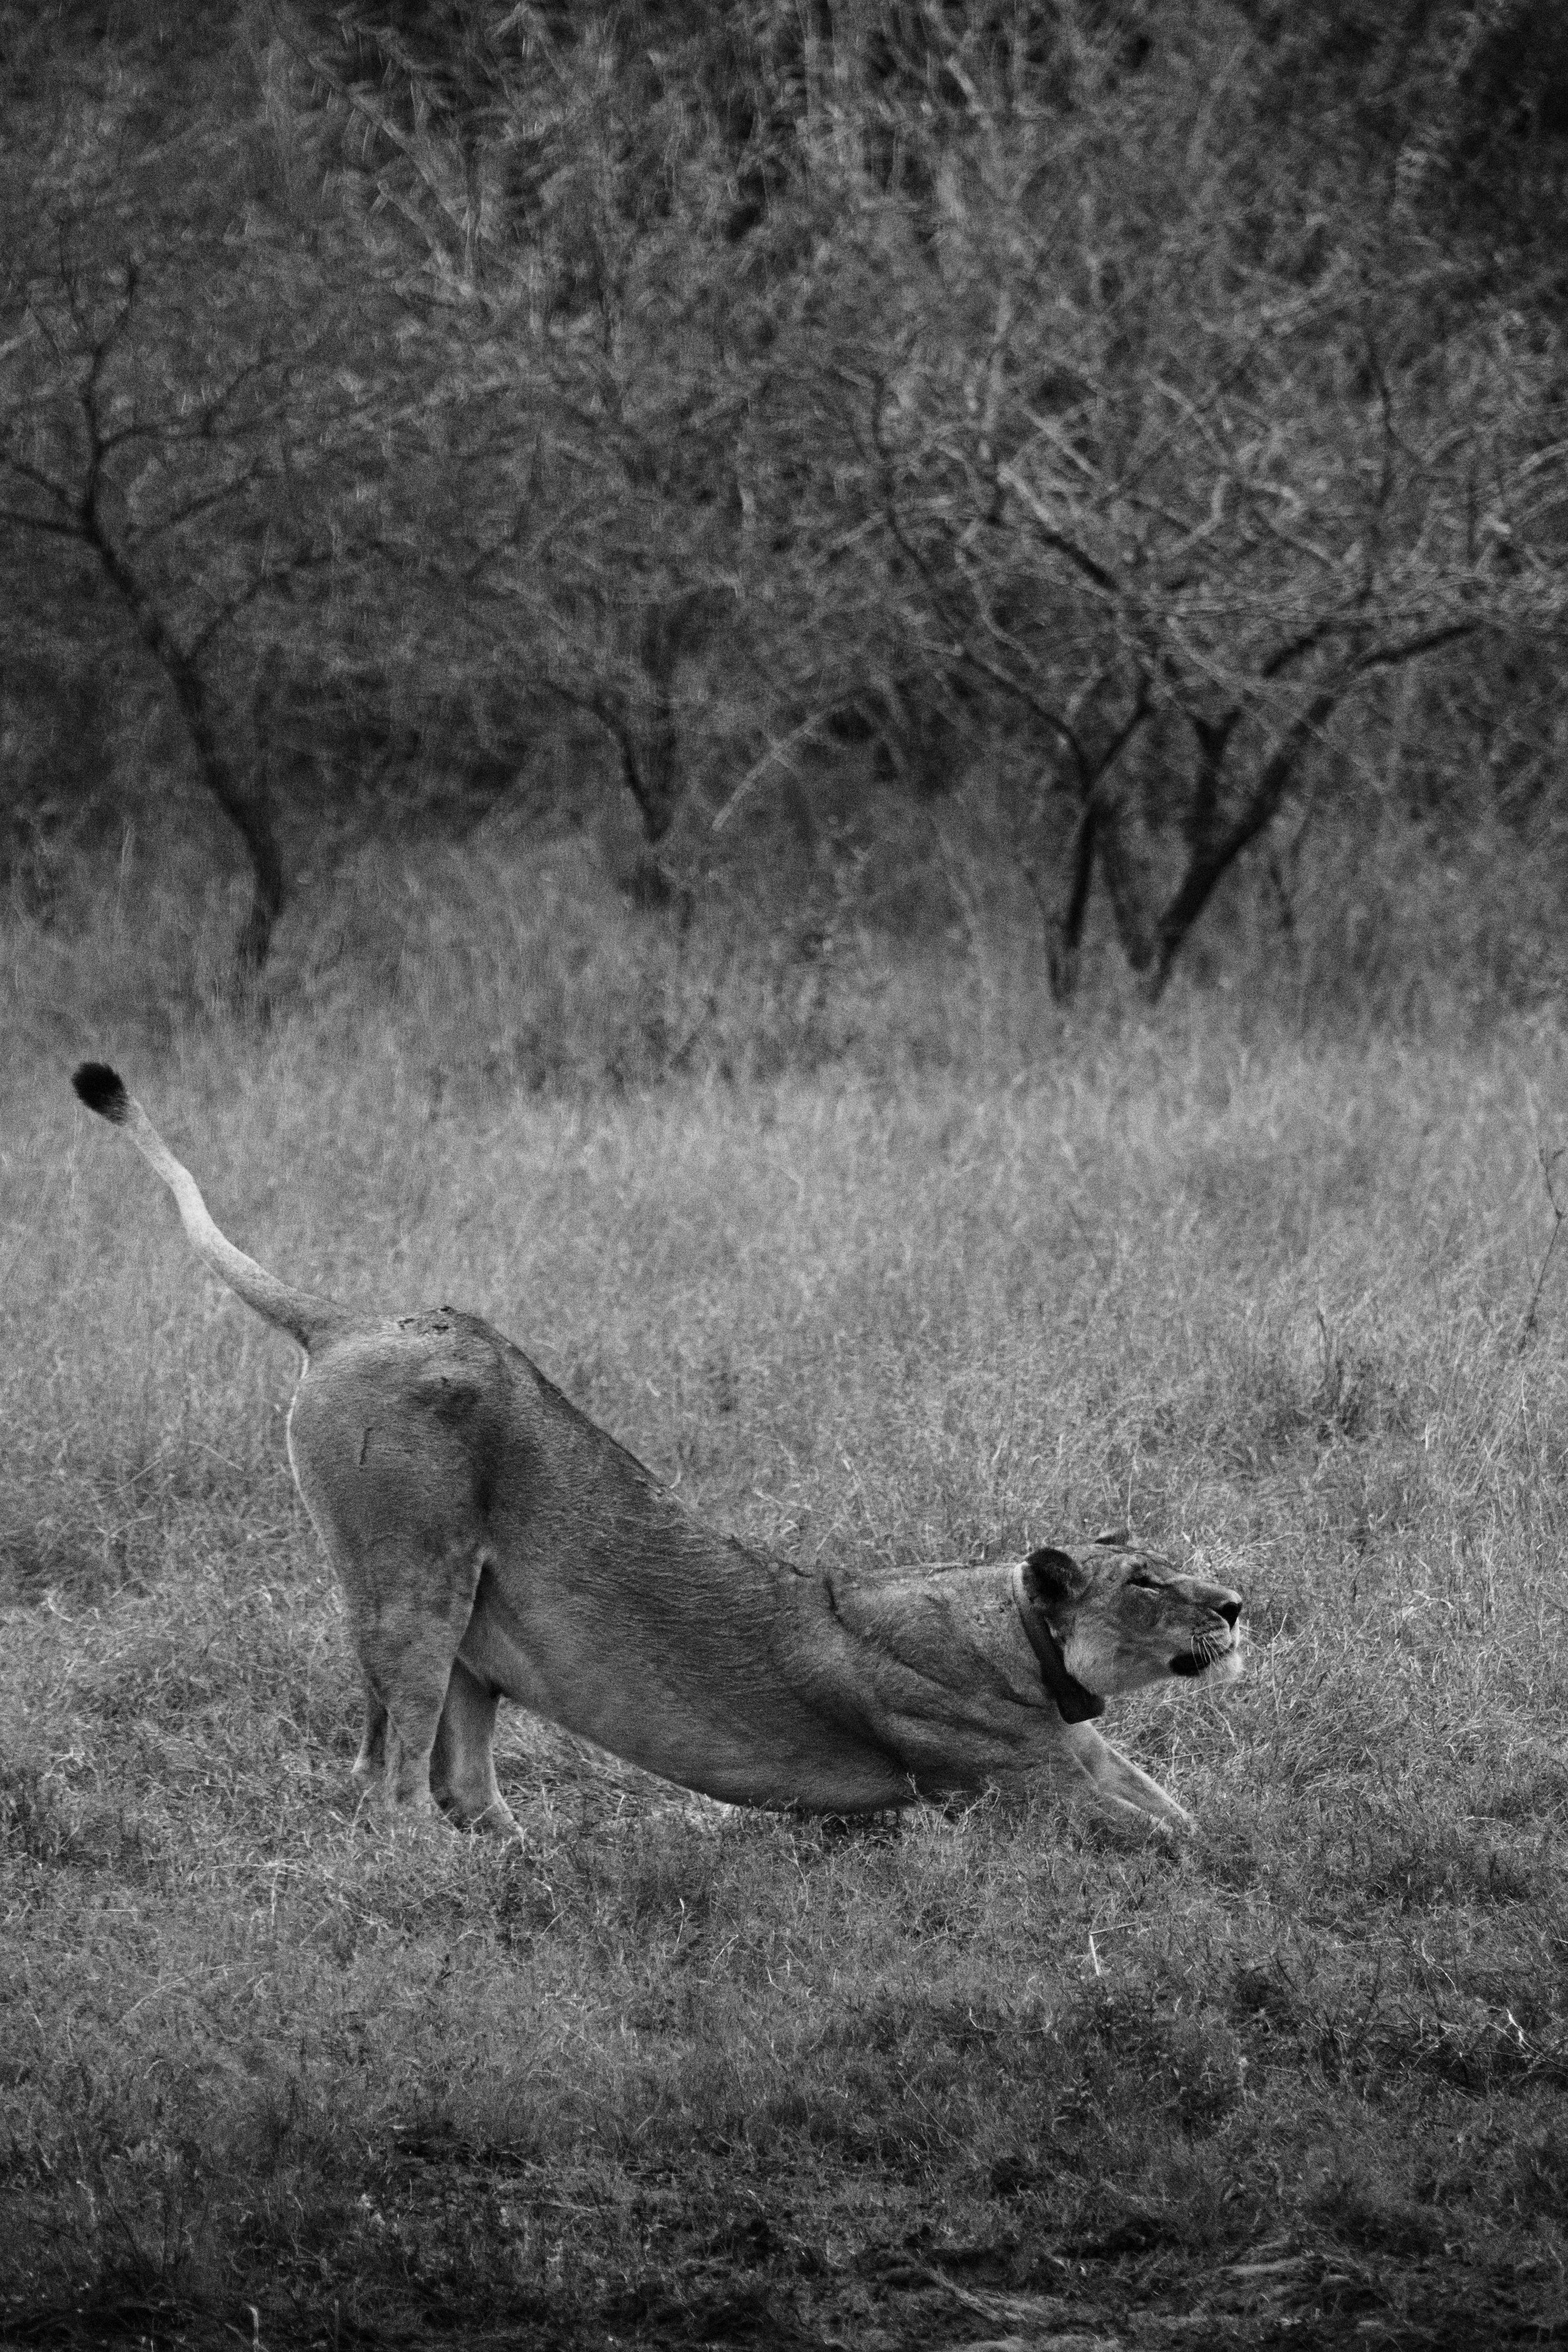 IMG_6694_8.17.18_afternoon game drive_xx.jpg